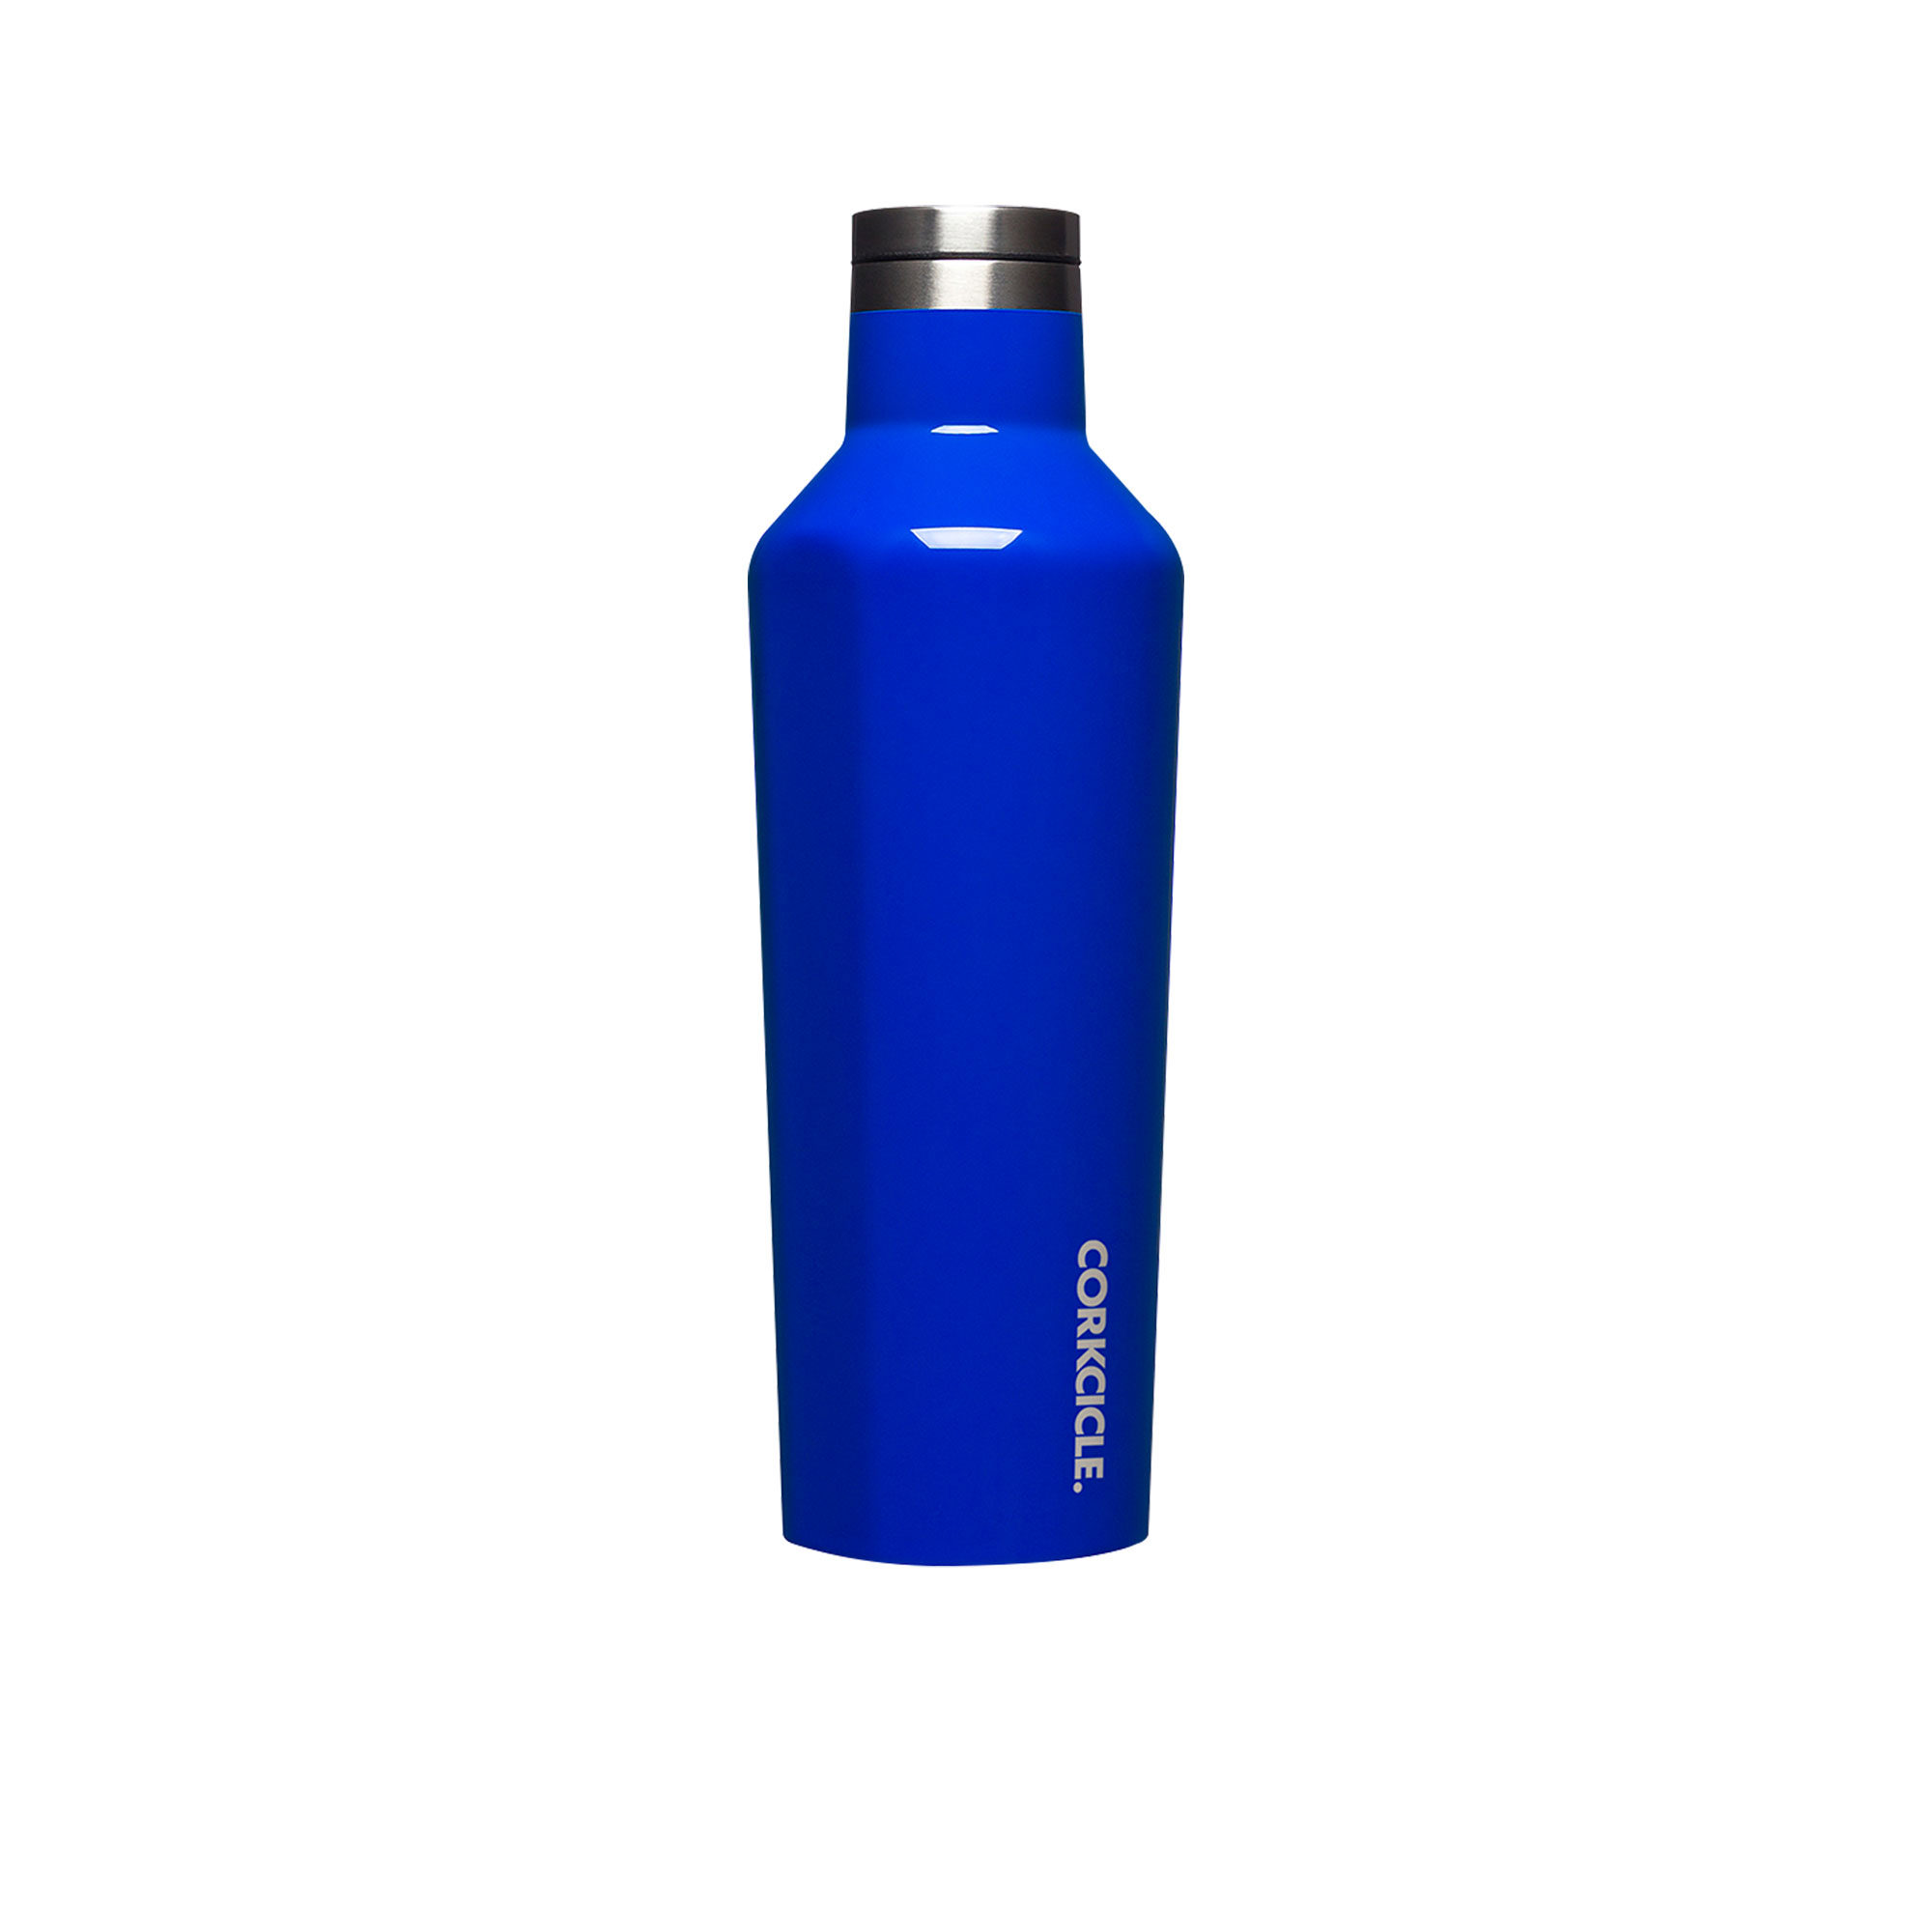 Corkcicle Classic Canteen Insulated Drink Bottle 475ml Cobalt